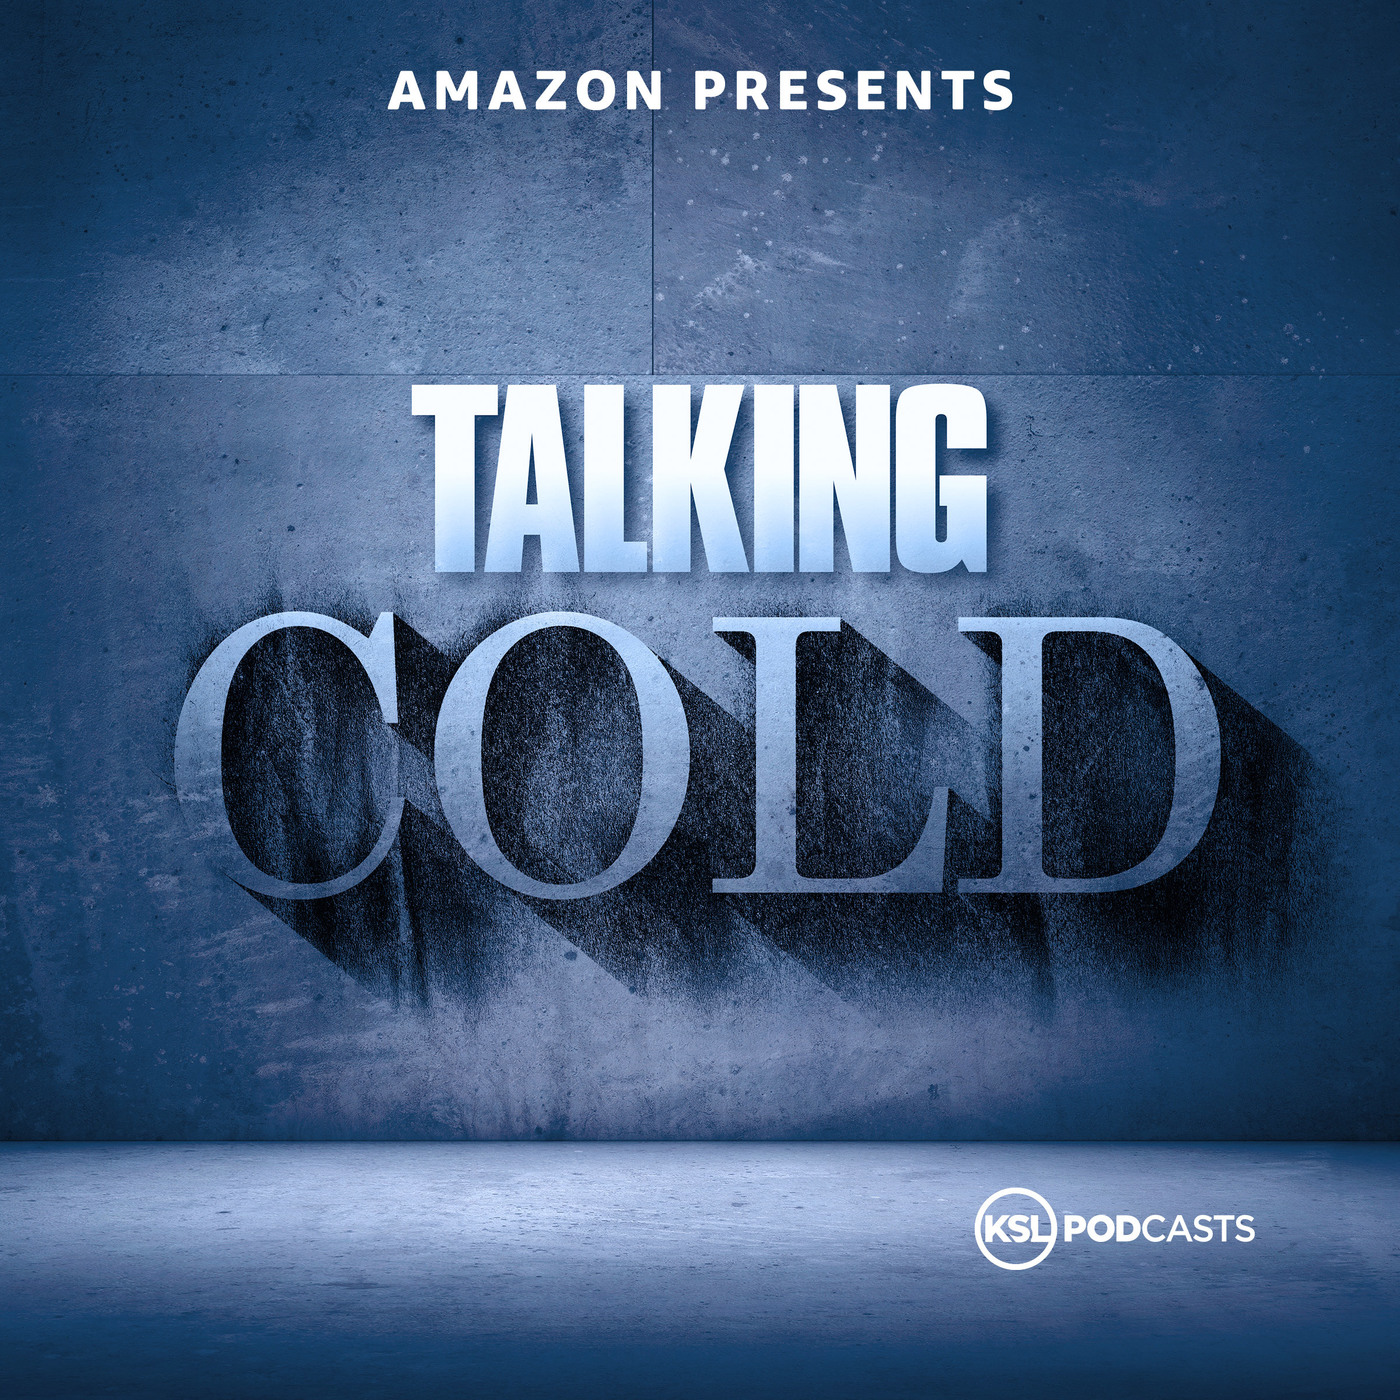 Talking Cold: Discussion of Episode 1